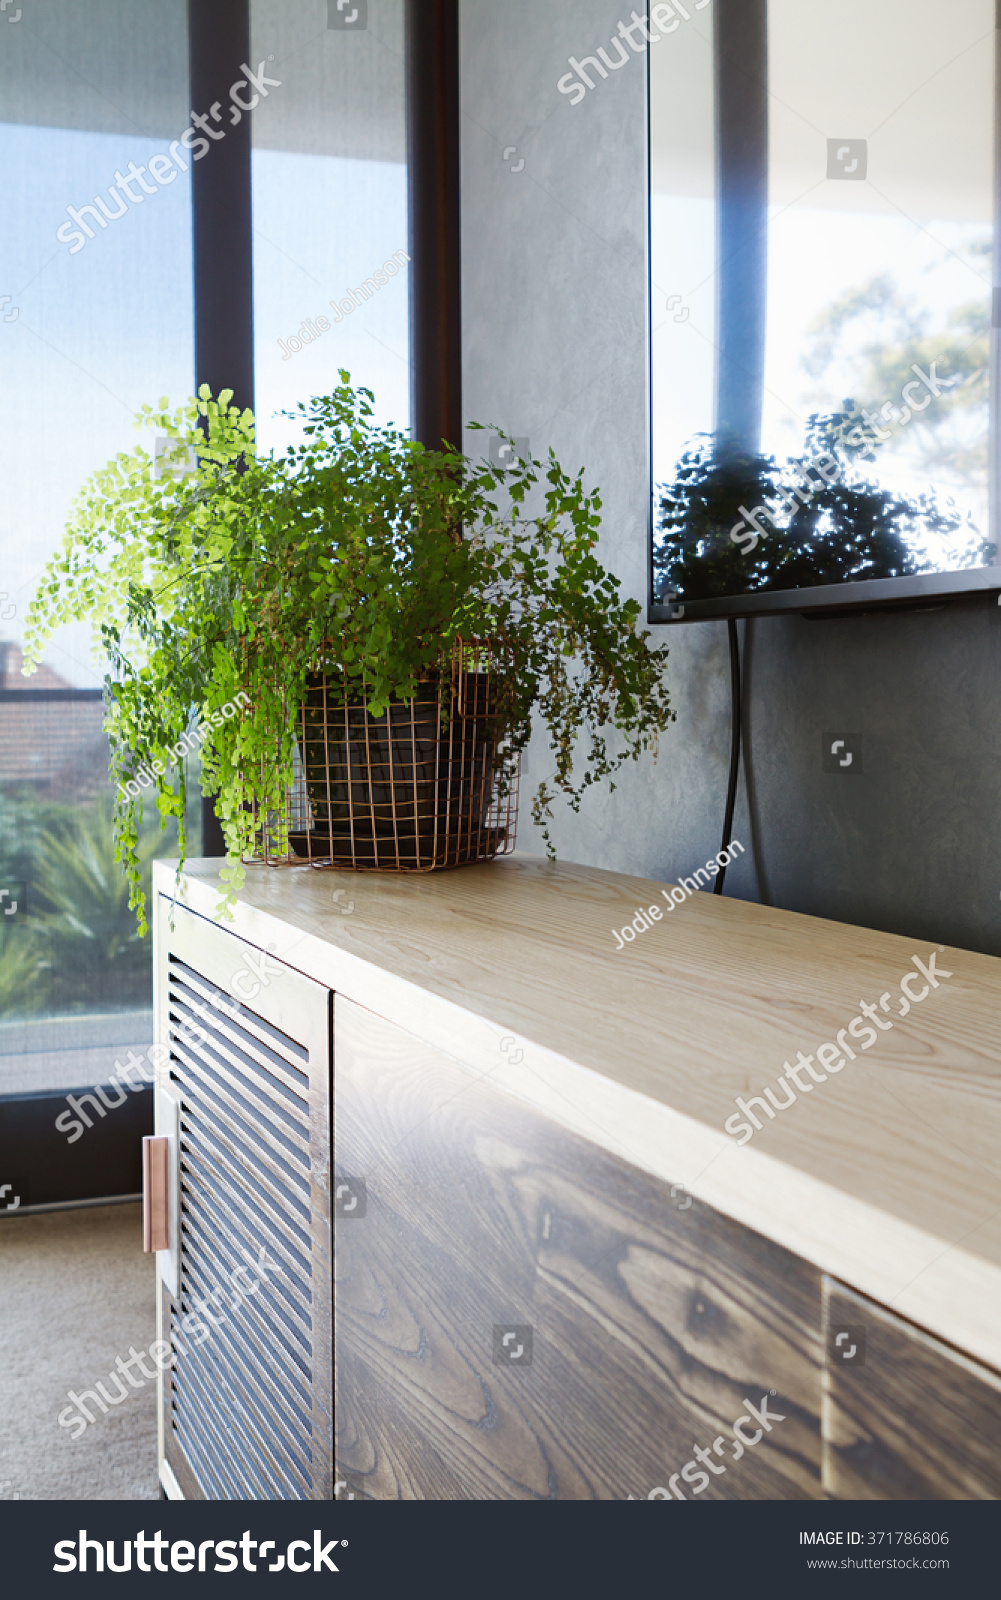 Bedroom Buffet With Copper Wire Basket Indoor Plant On Buffet With Wall  Mounted Tv Above